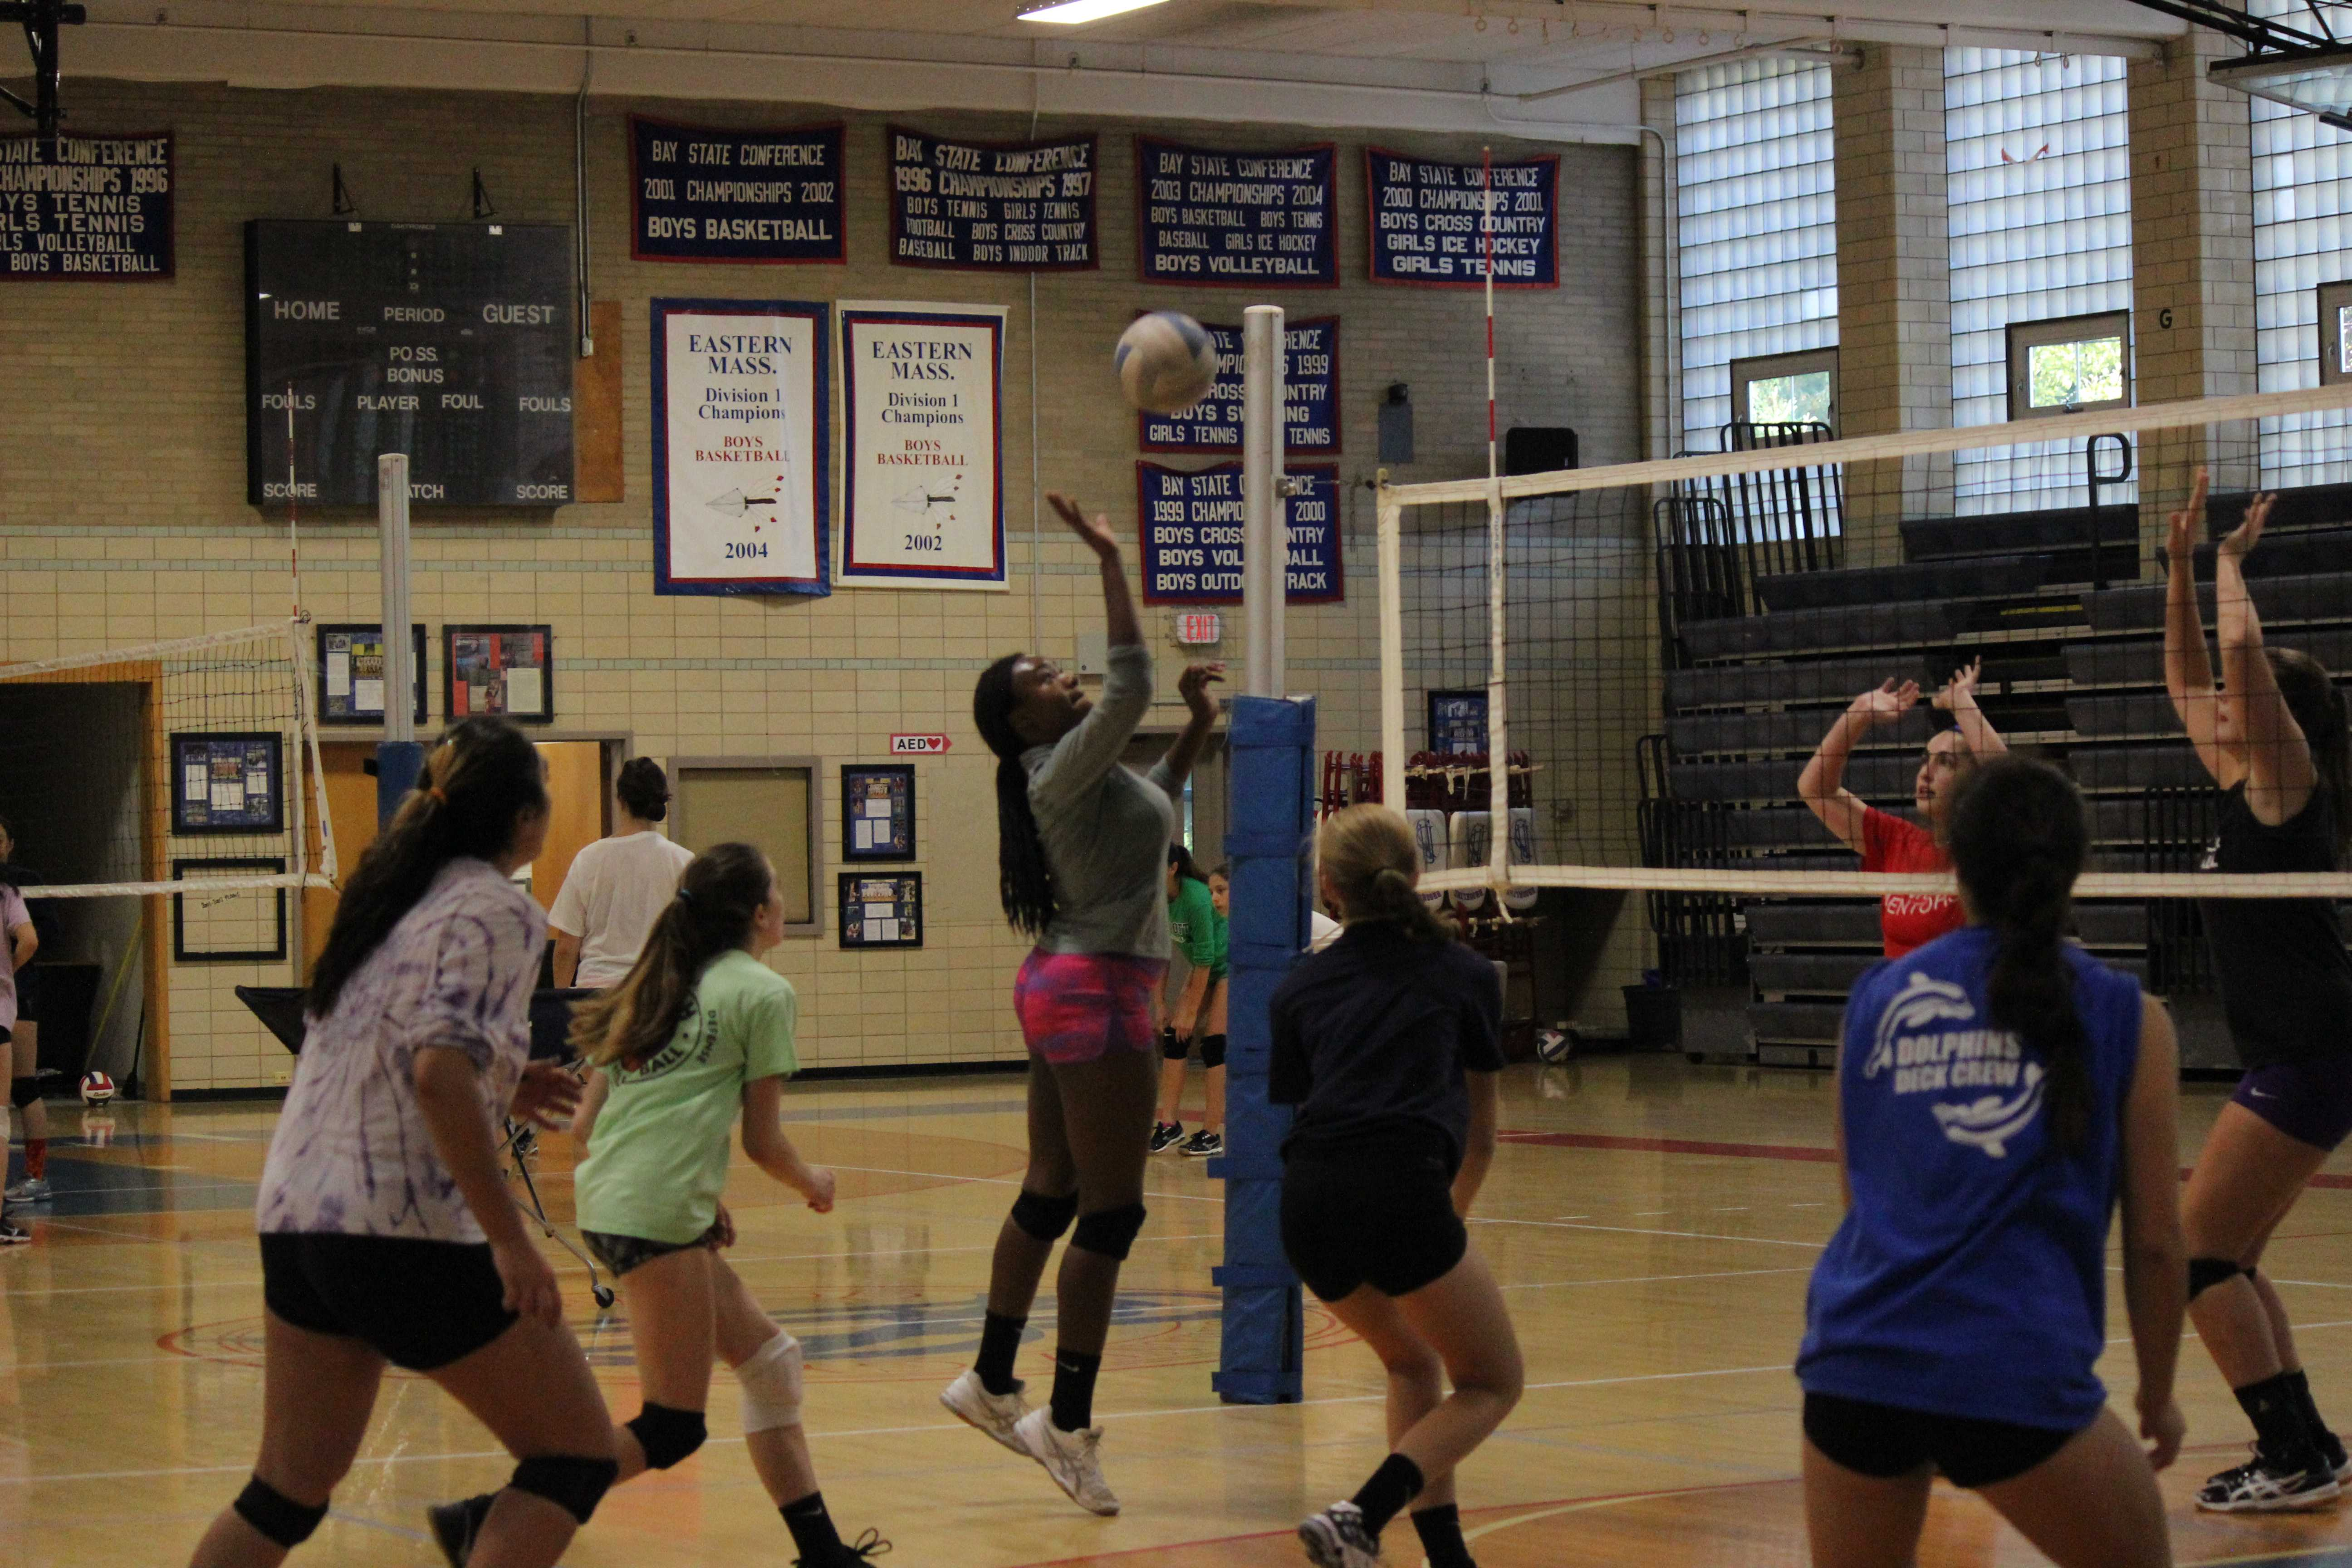 Junior Ndanu Mutsiya hits a ball during a girls volleyball practice in the Schluntz Gymnasium. PETRA HUANG FOR THE SAGAMORE